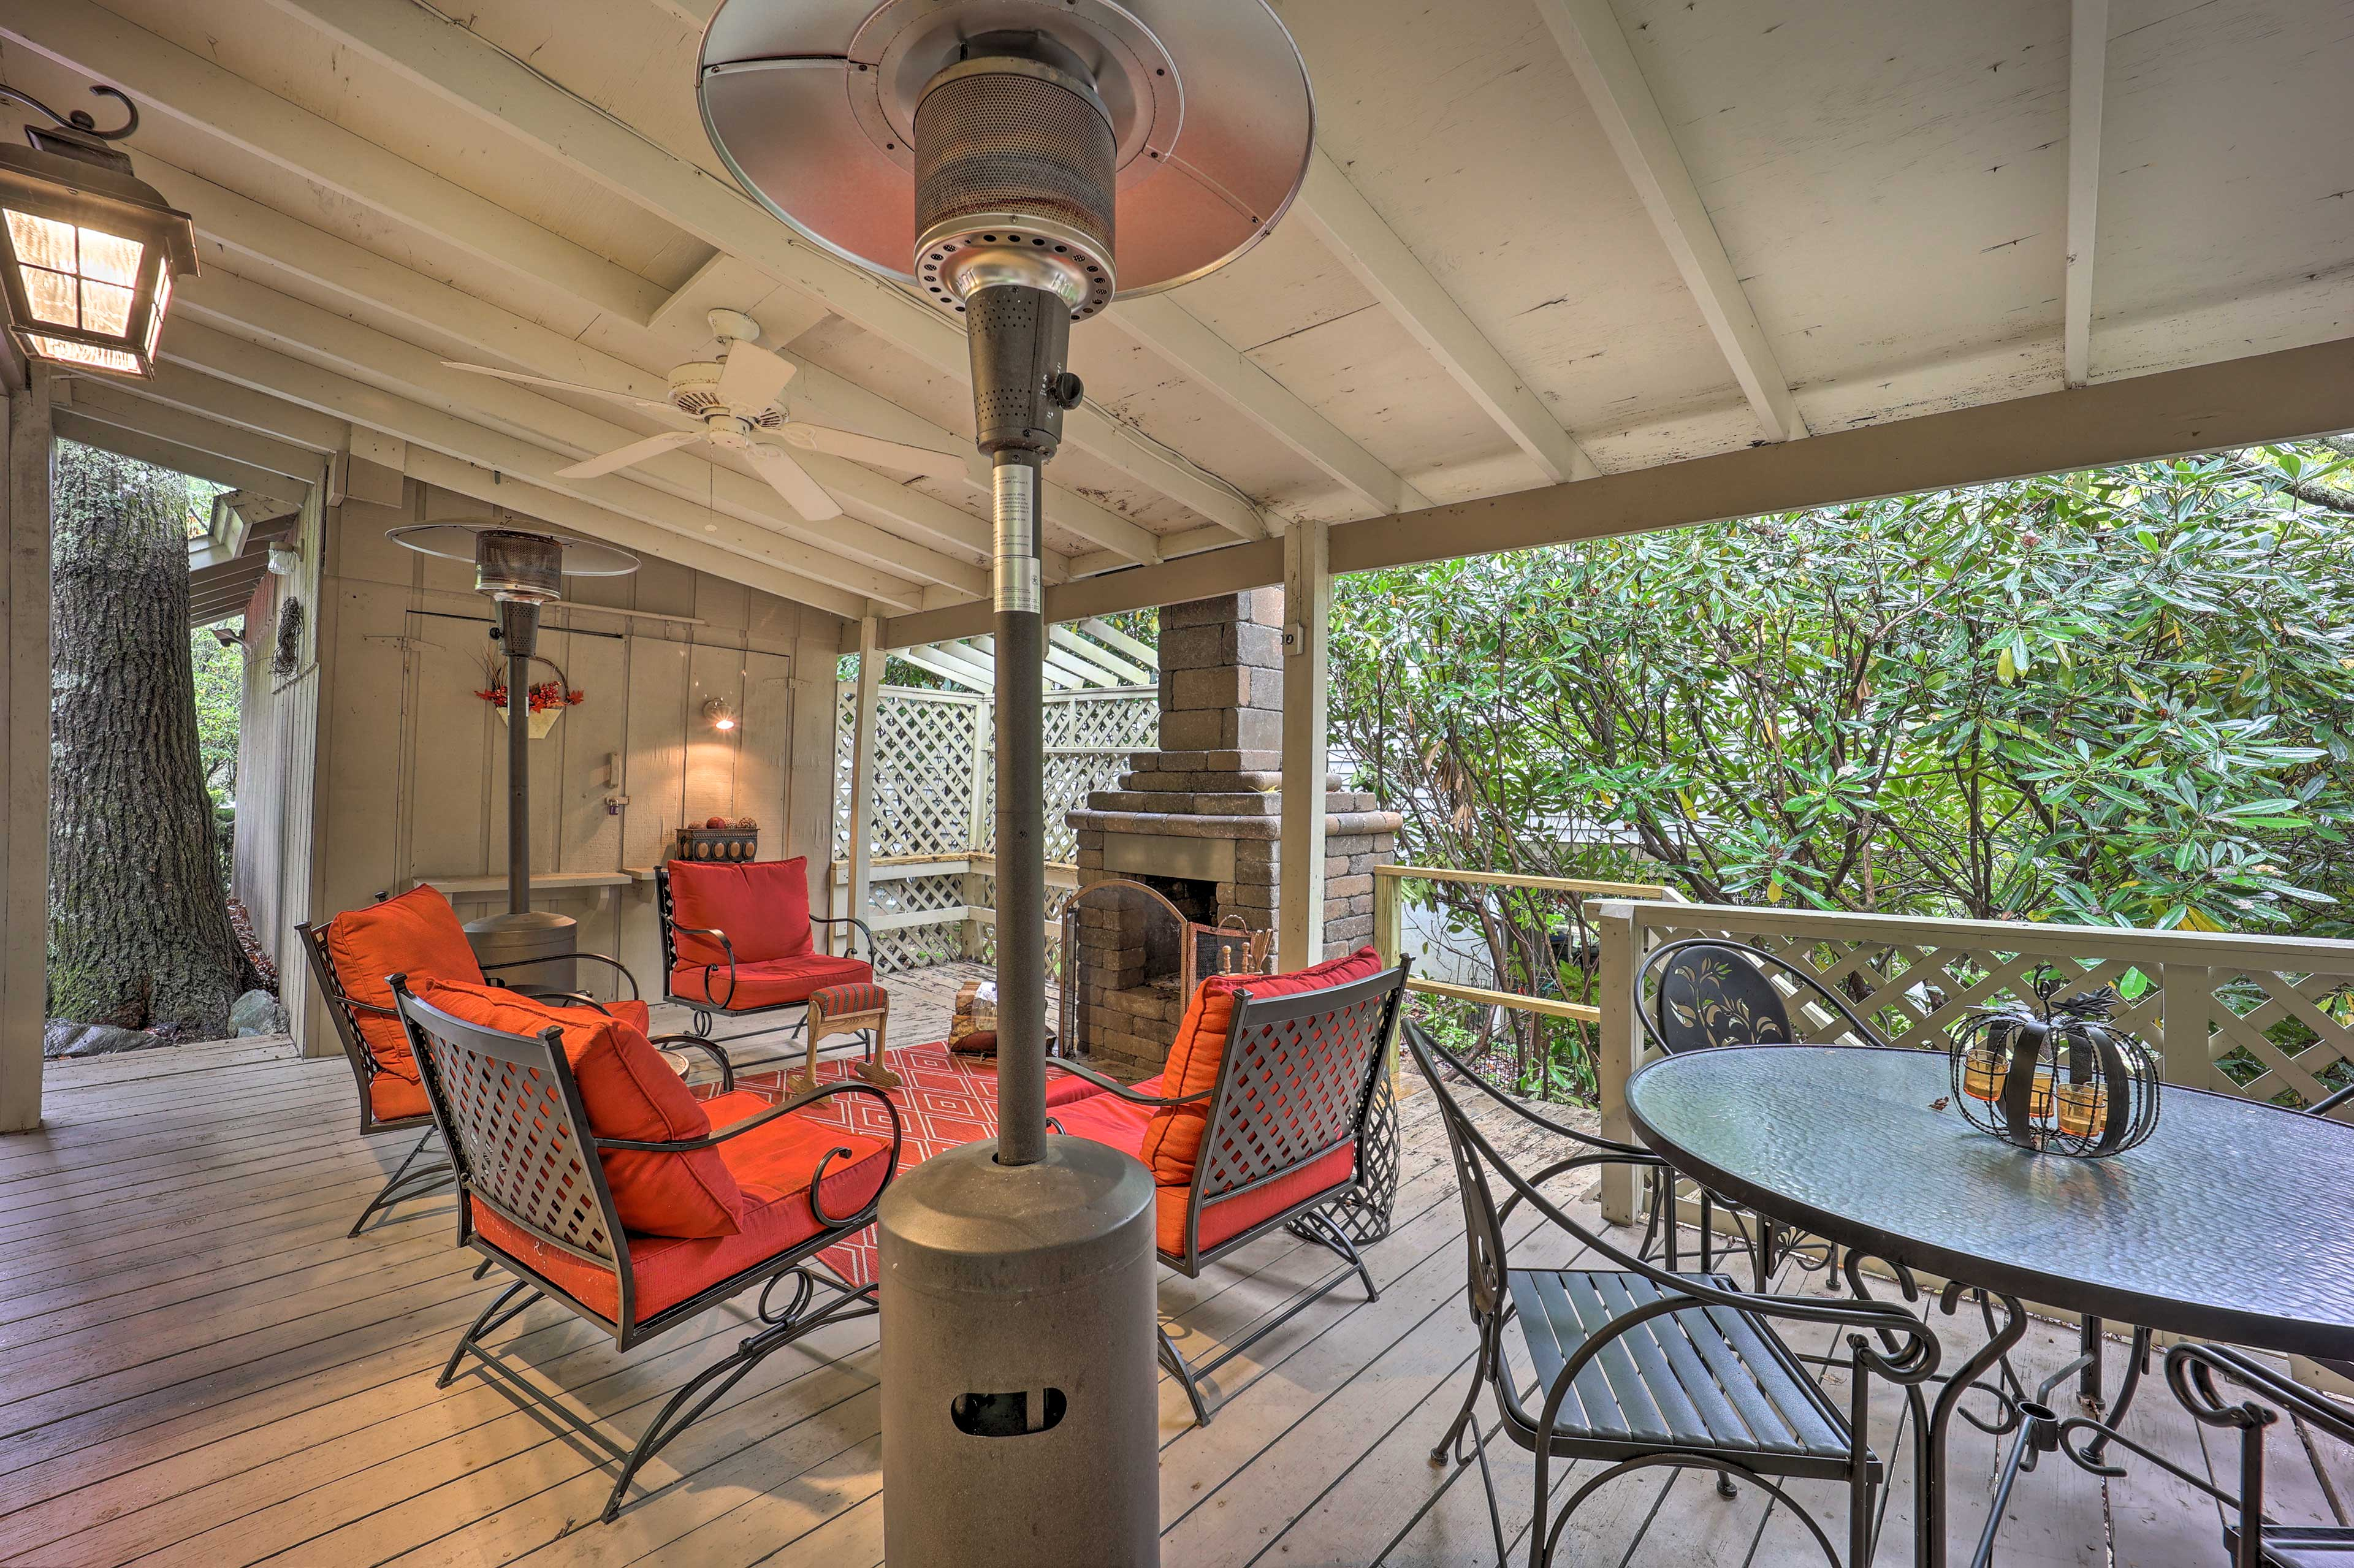 Covered Outdoor Space | 2 Heaters